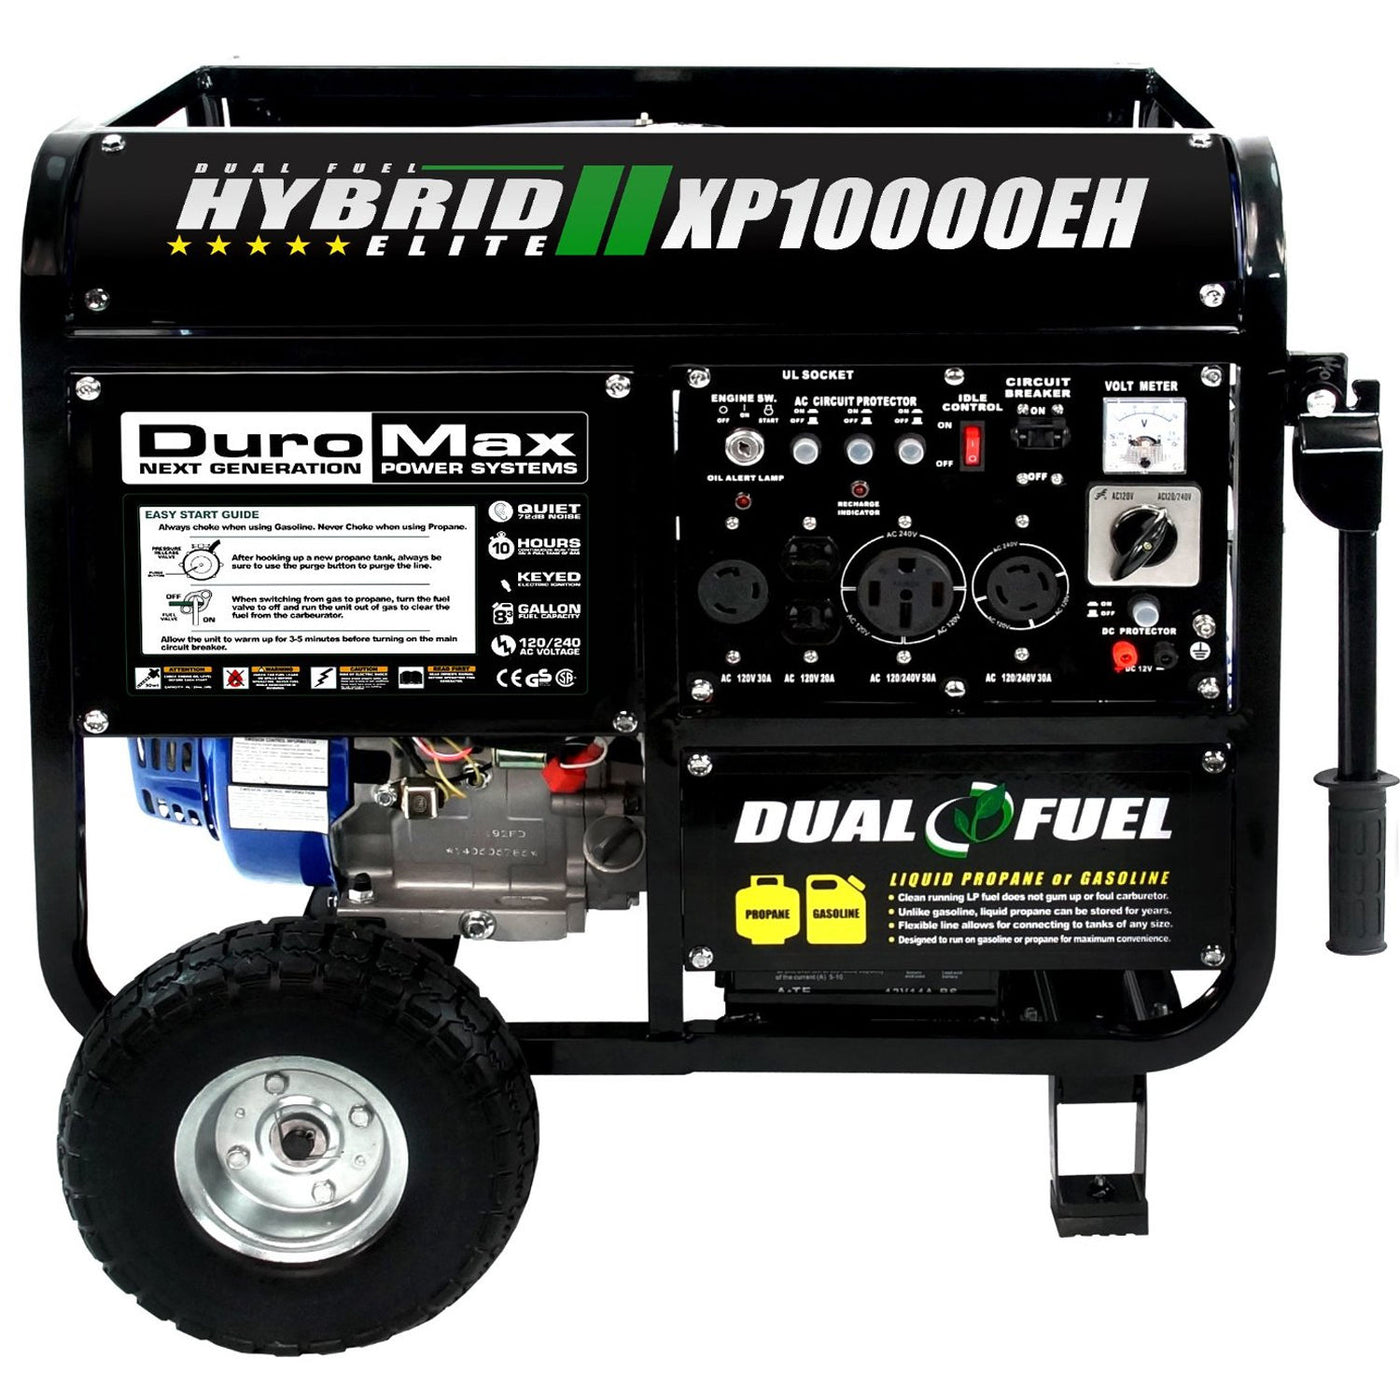 Powerful DuroMax XP10000EH | DualFuel Generator for Homeowners